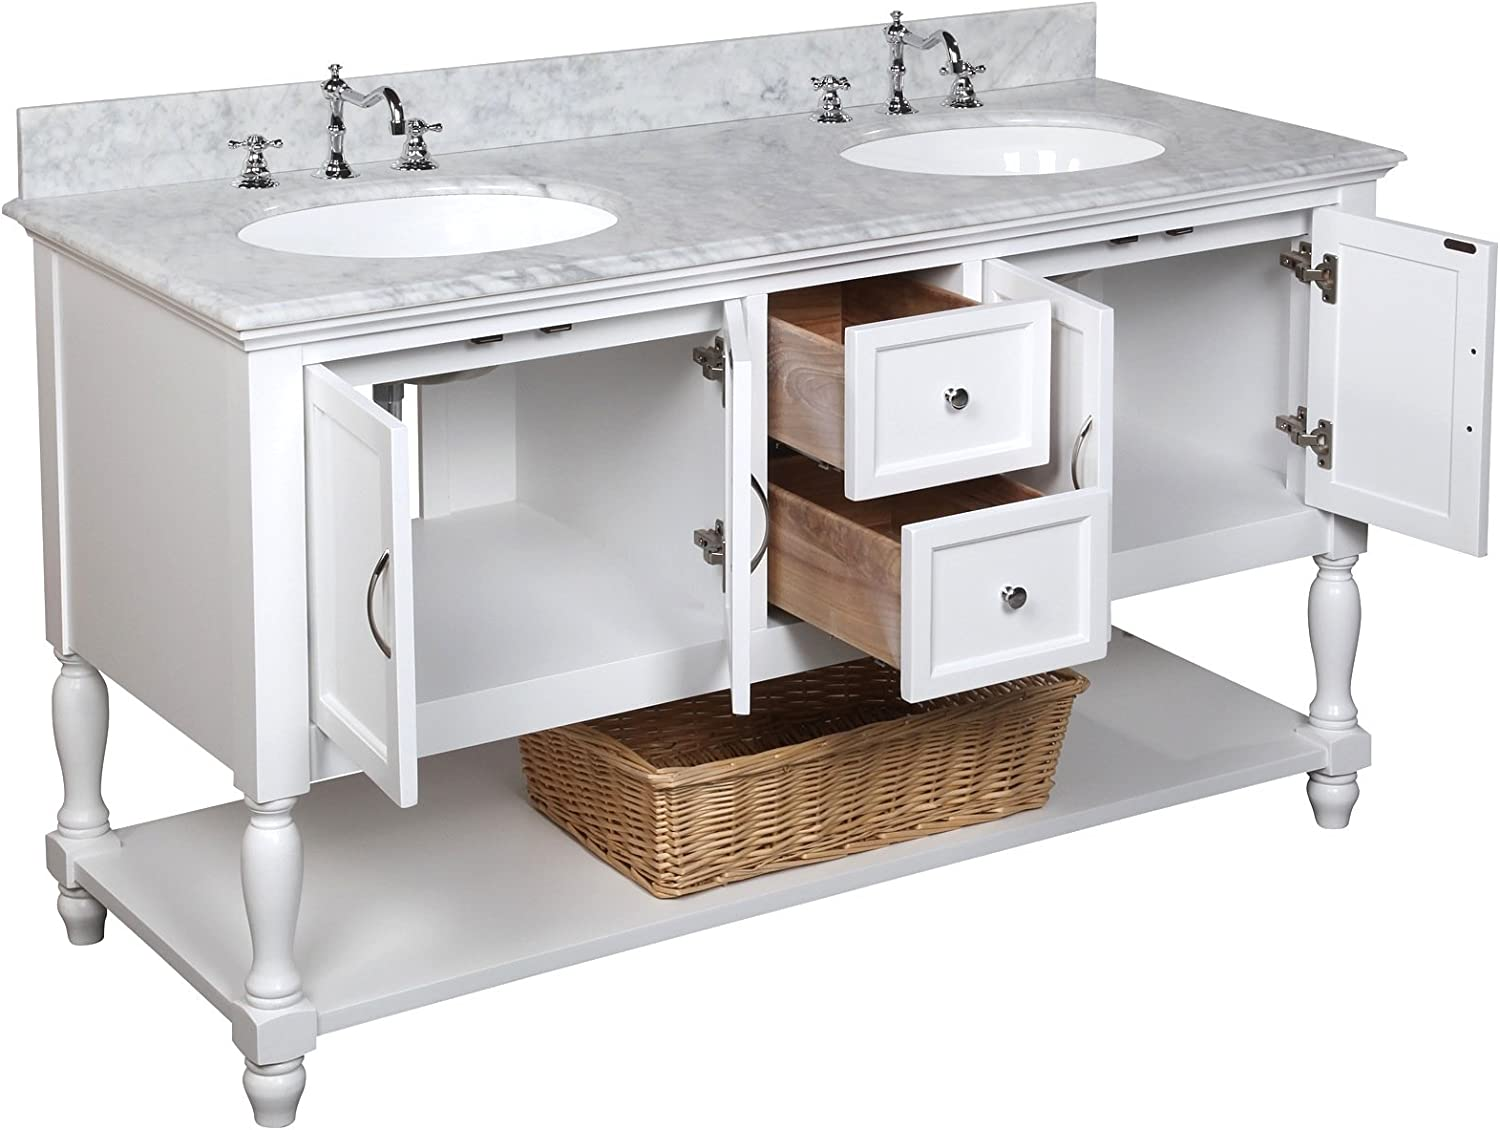 Amazon Com Beverly 60 Inch Double Bathroom Vanity Carrara White Includes White Cabinet With Authentic Italian Carrara Marble Countertop And White Ceramic Sinks Home Improvement